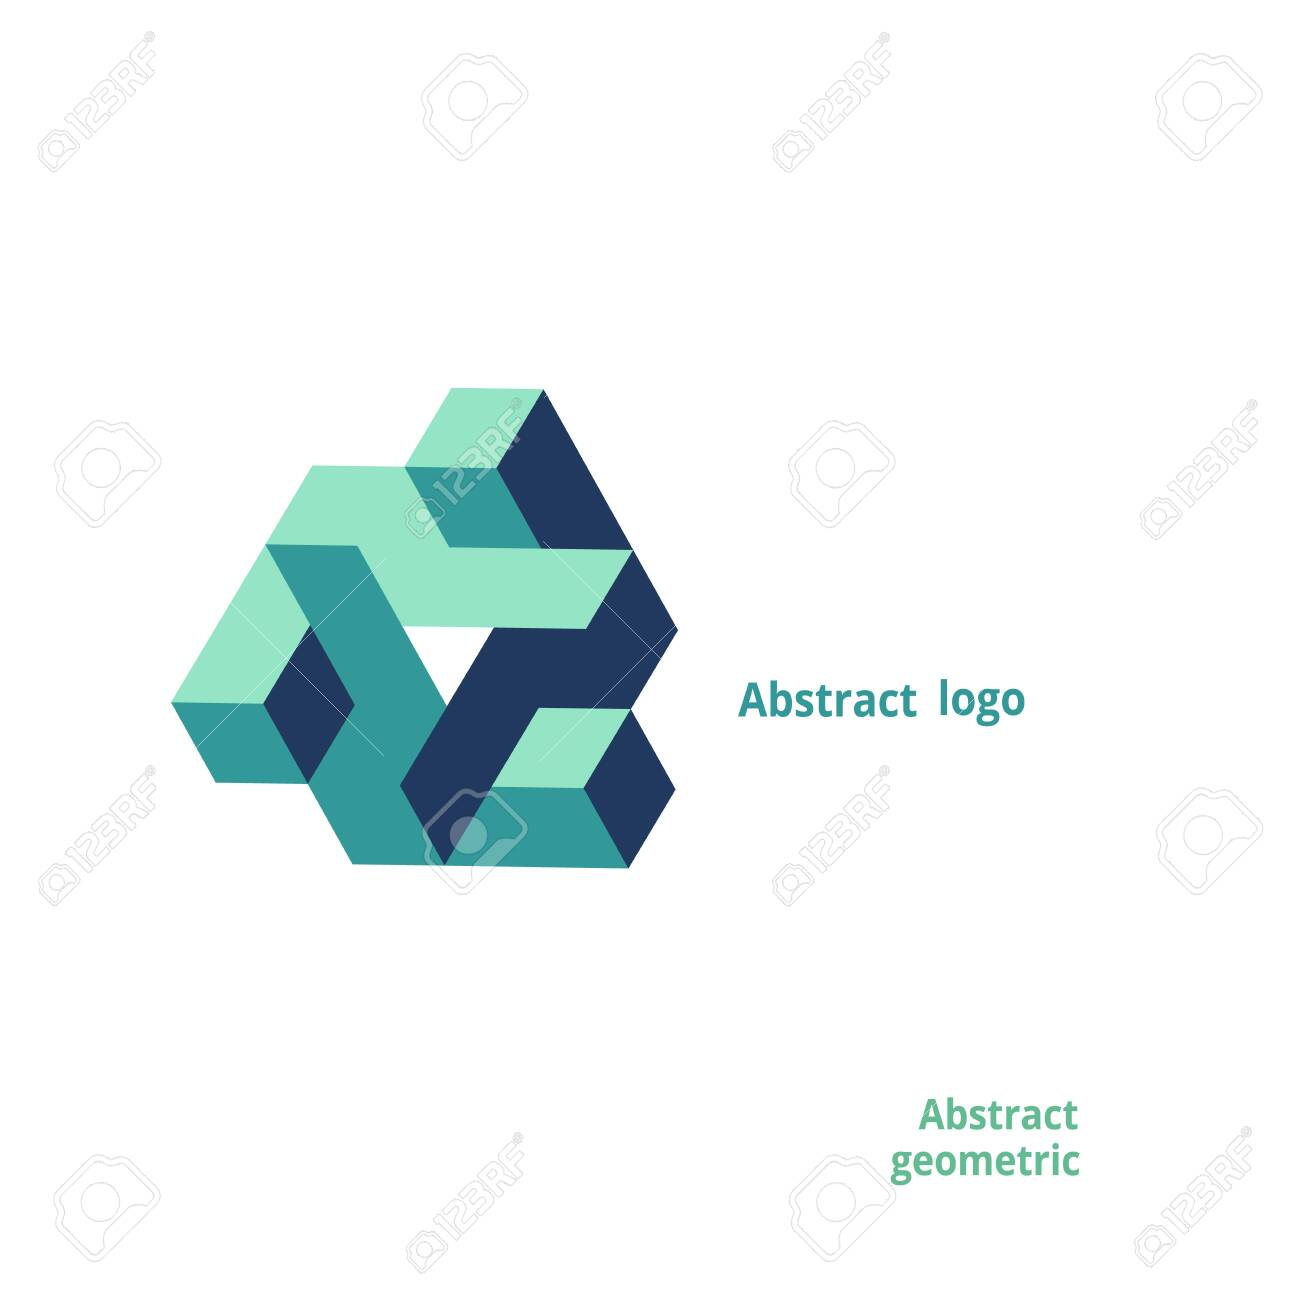 abstract geometric logo on a white background. Vector illustration - 149871495